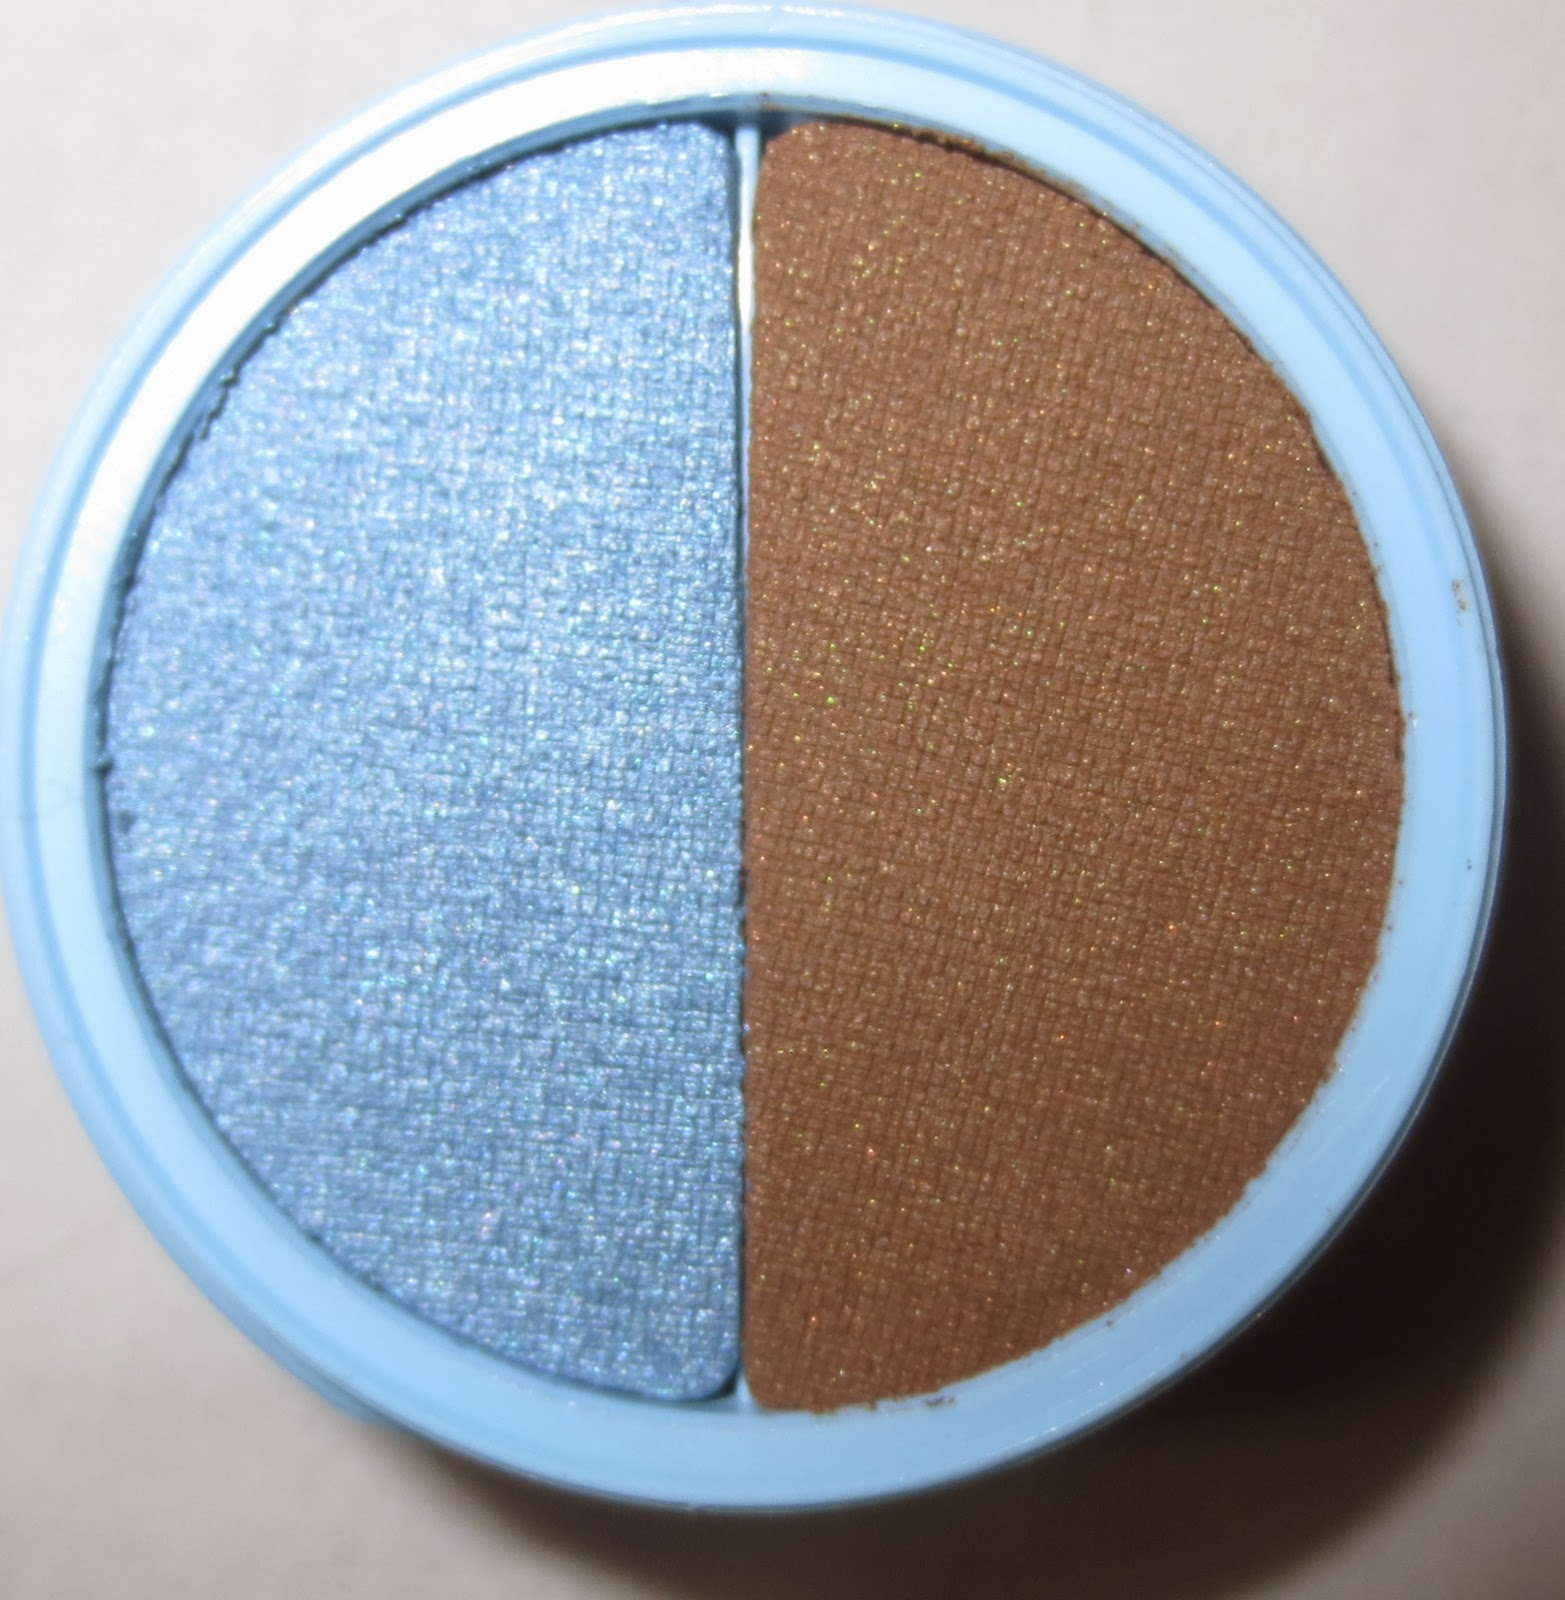 Mary Kay Springy Eye Duos in Stonewashed